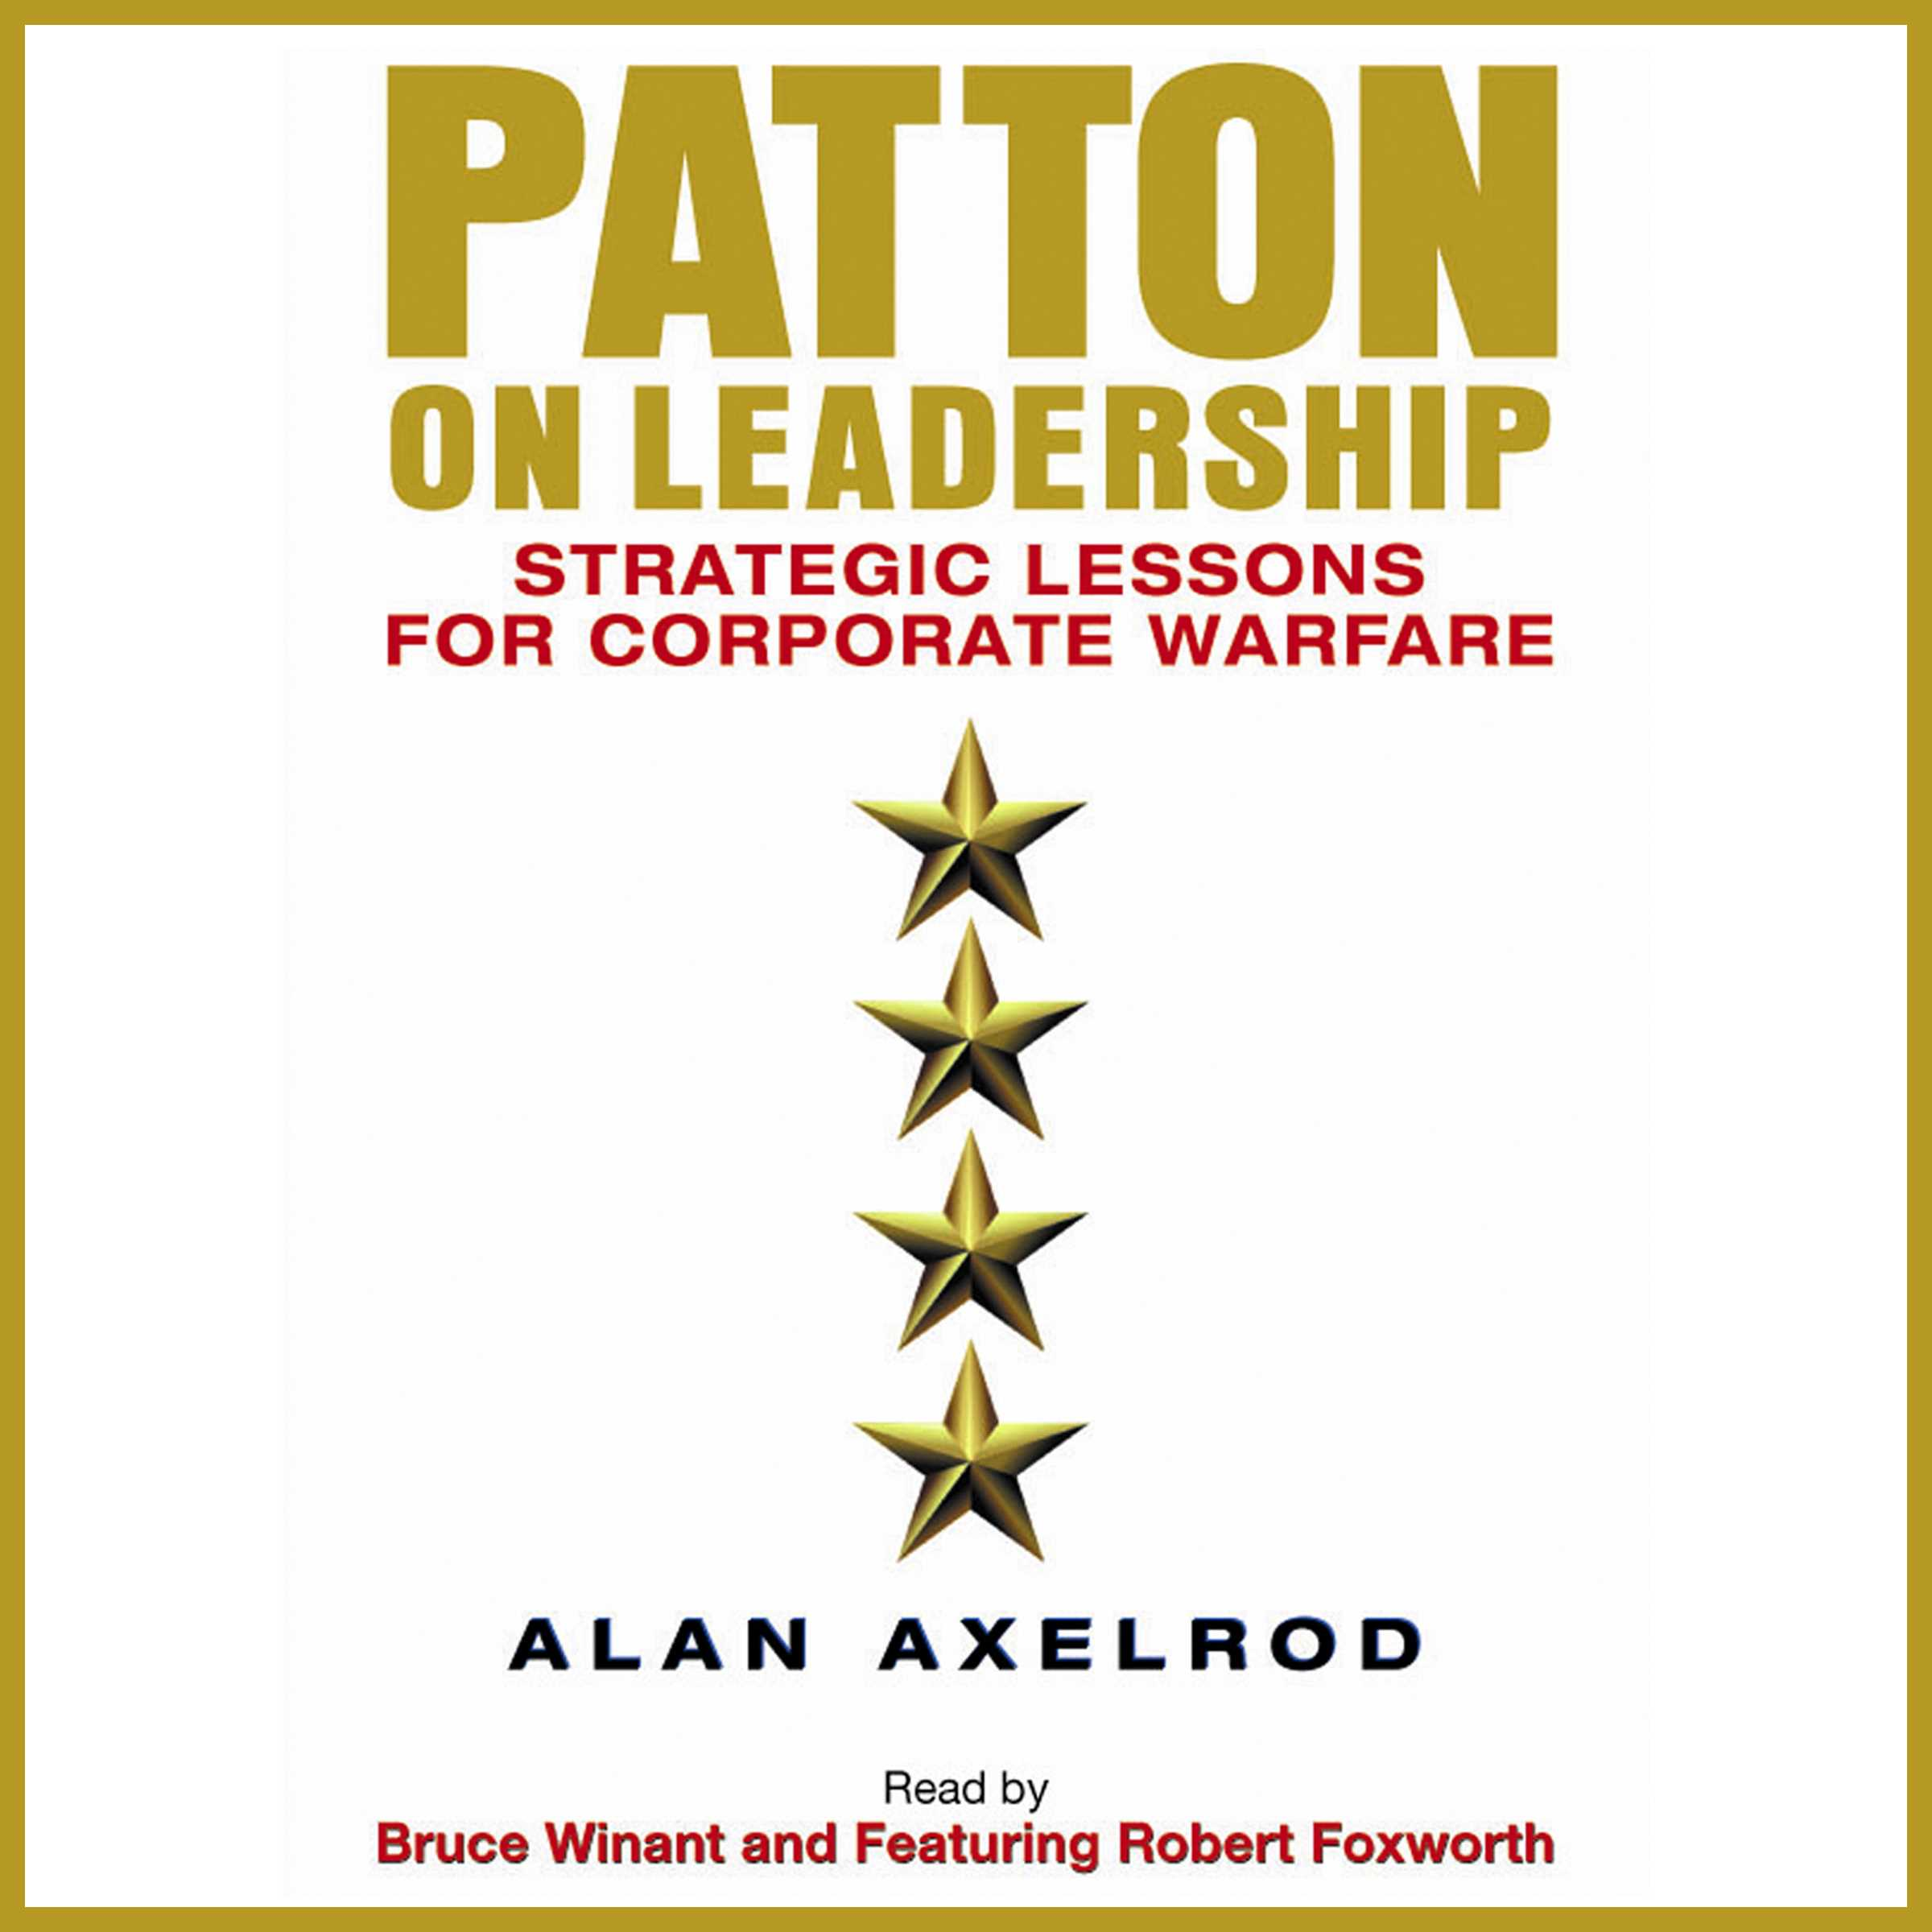 Patton-on-leadership-9780743545617_hr